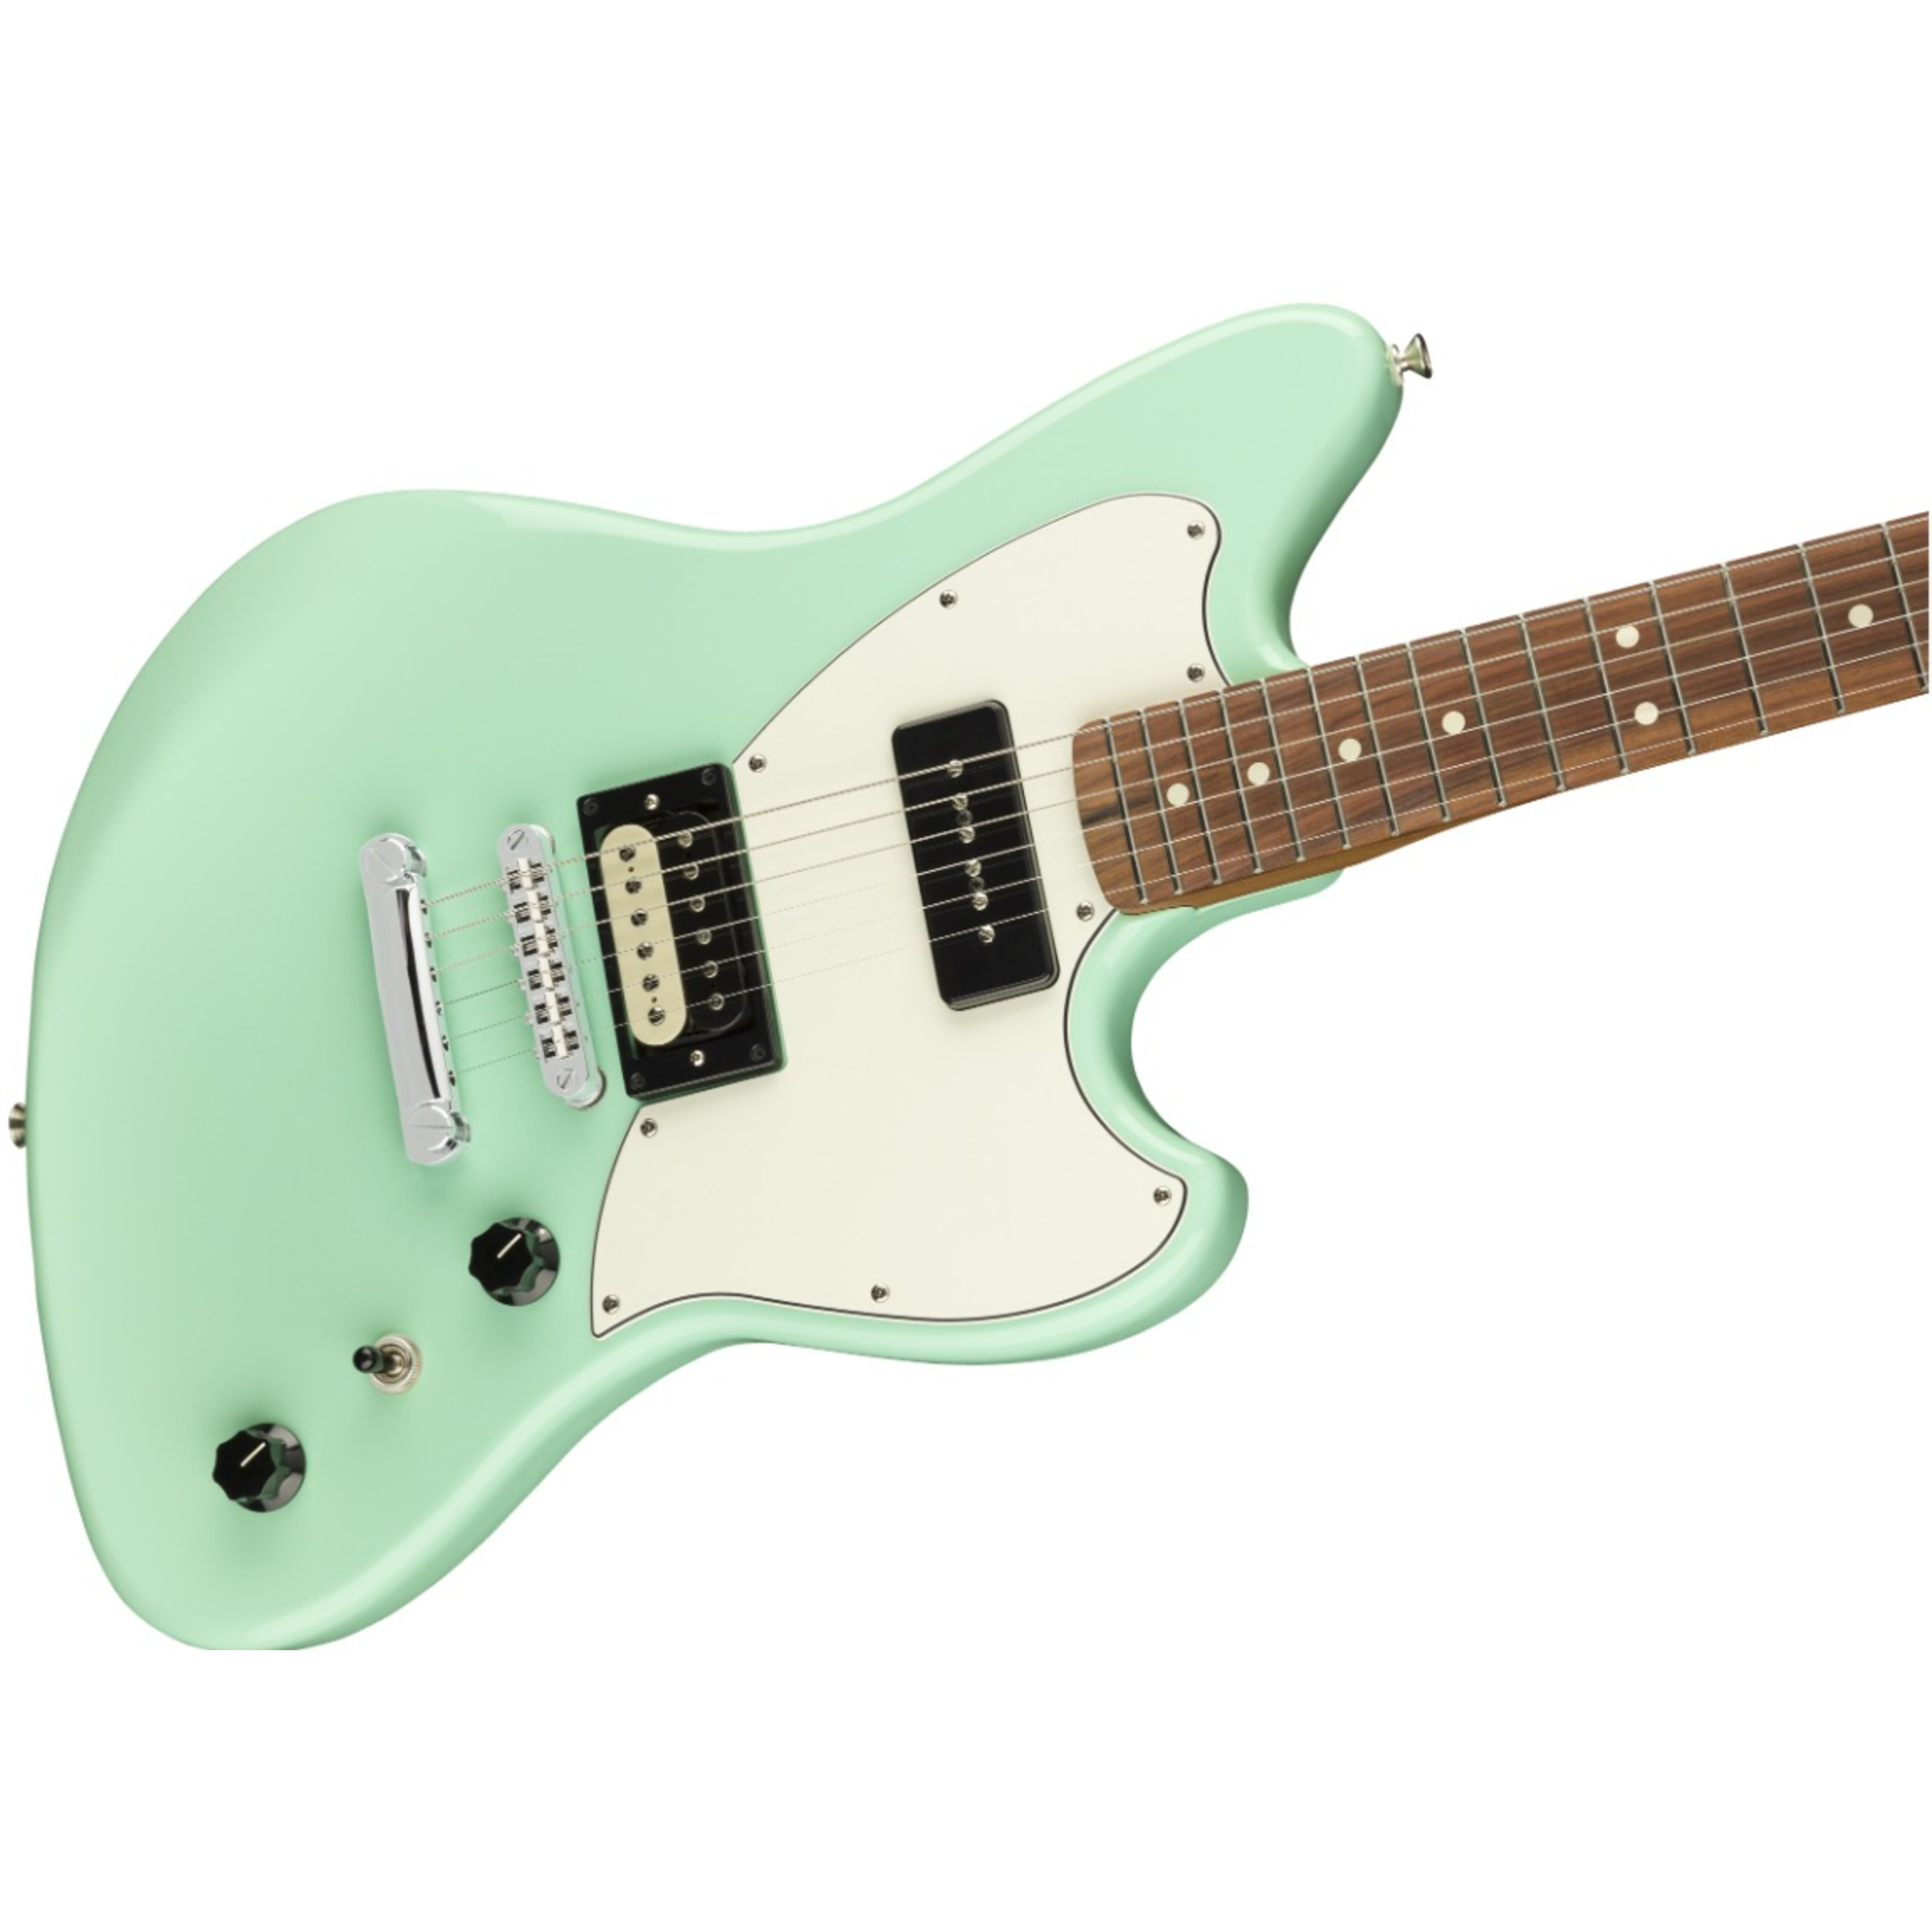 fender limited edition powercaster electric guitar surf green giggear. Black Bedroom Furniture Sets. Home Design Ideas